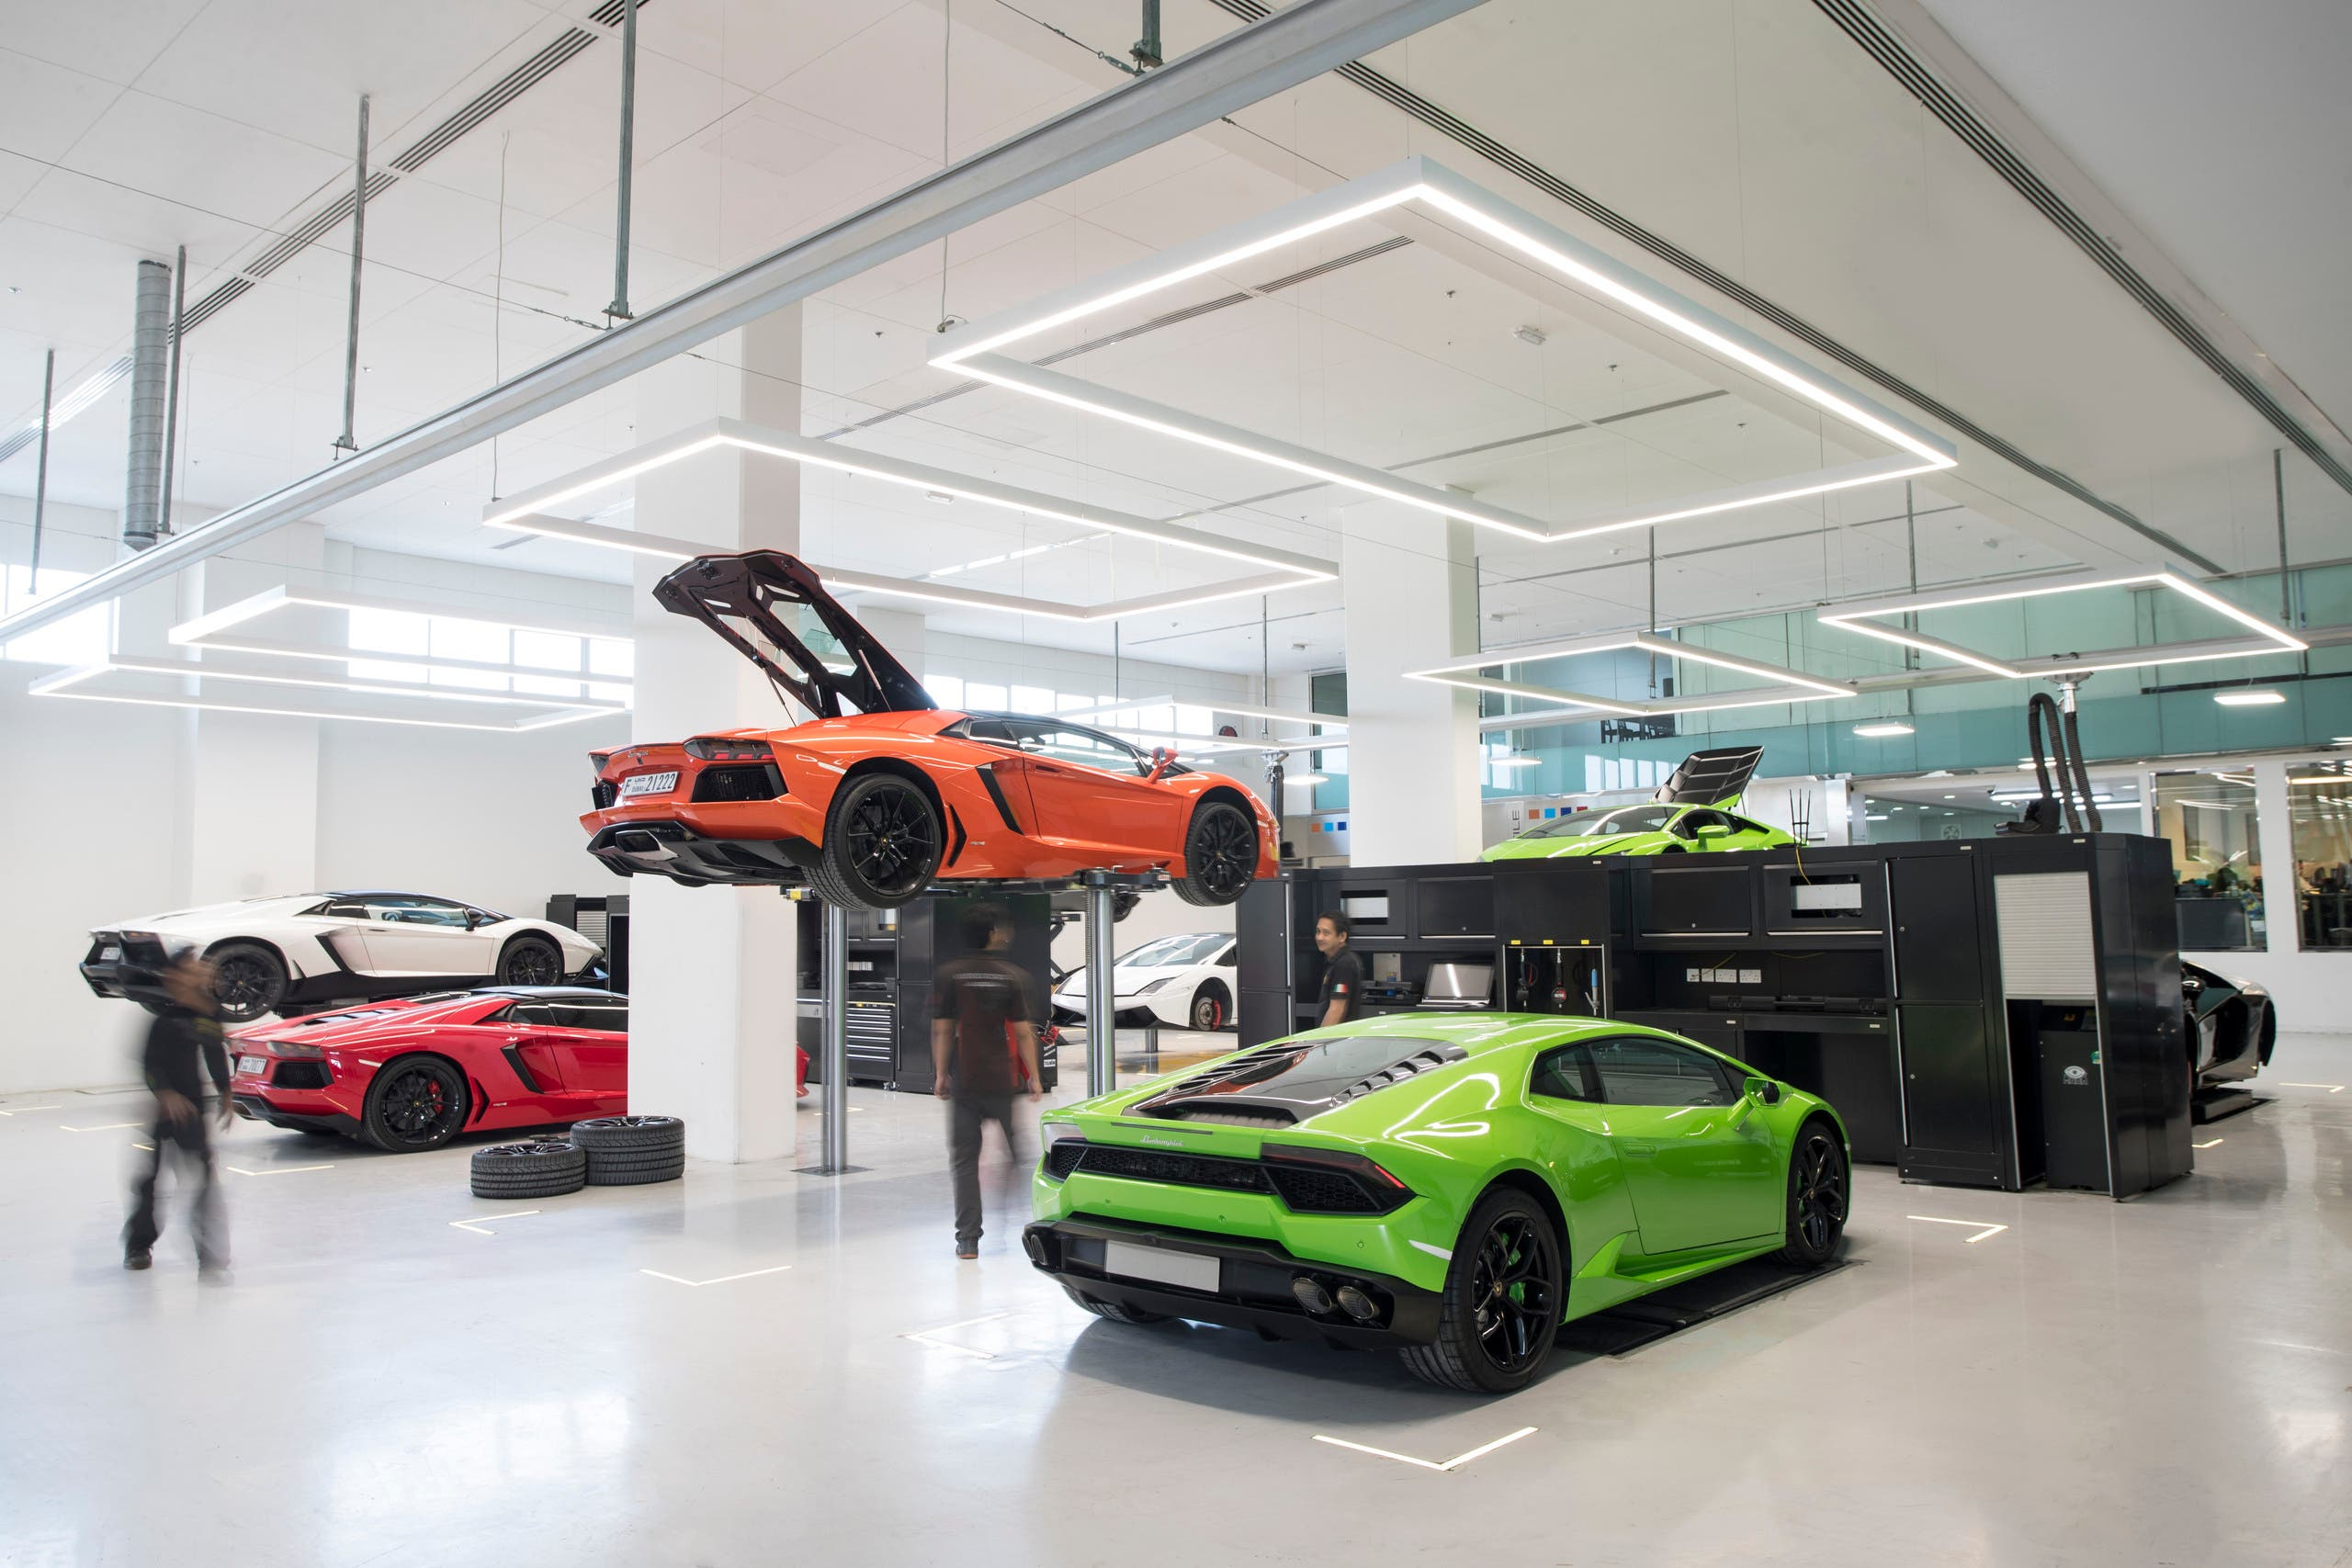 Inside Look At World S Largest Lamborghini Showroom In Dubai Al